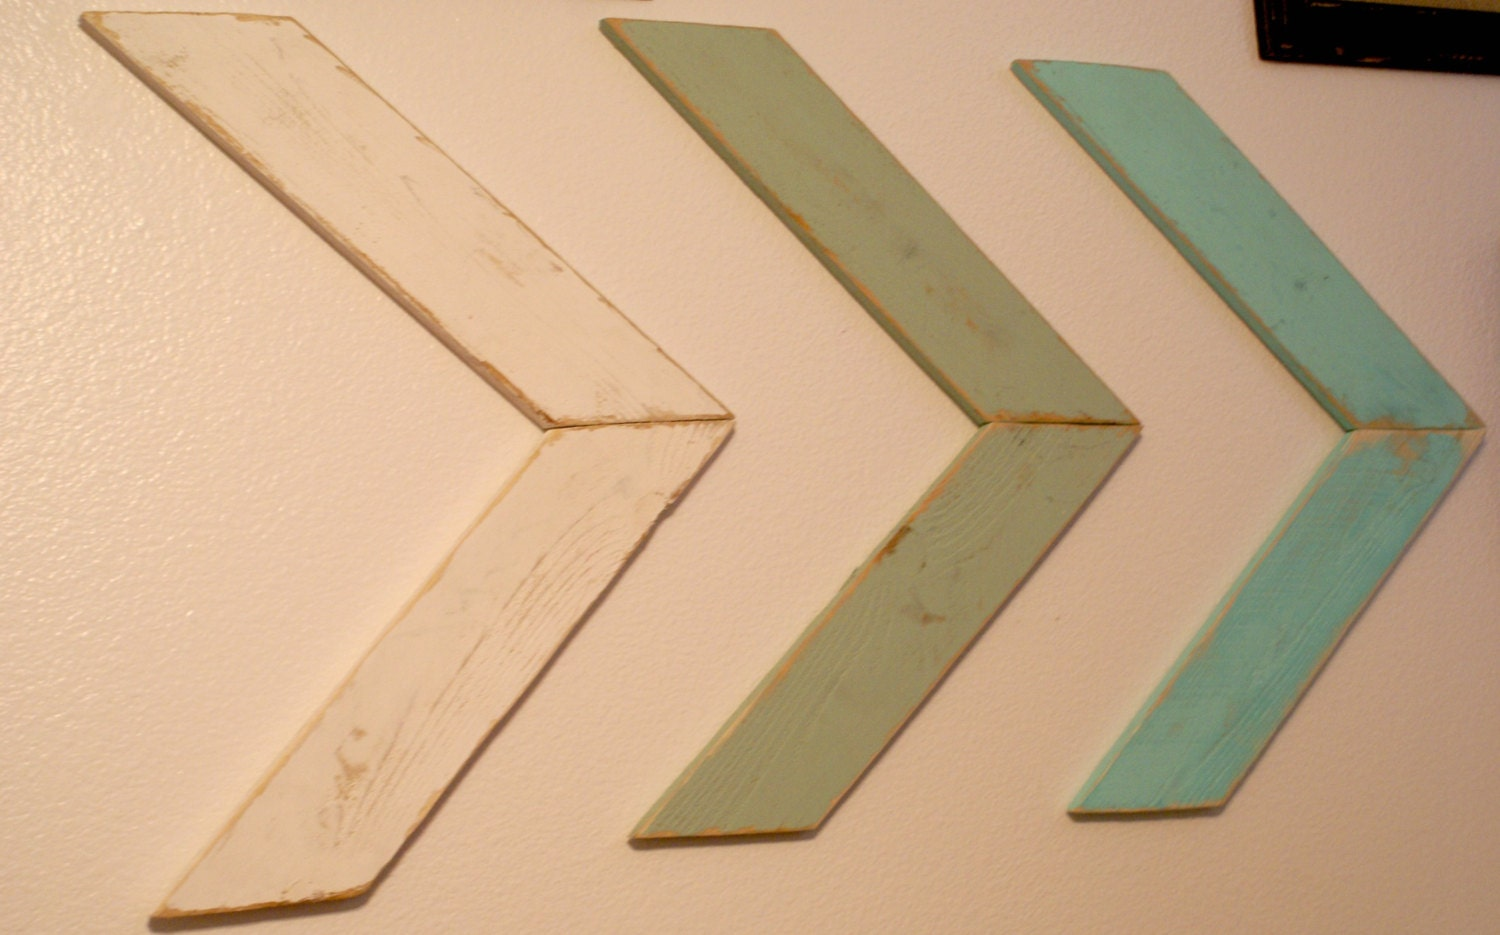 Wall Decor Wooden Arrows : Large single painted wooden arrow wall decor by